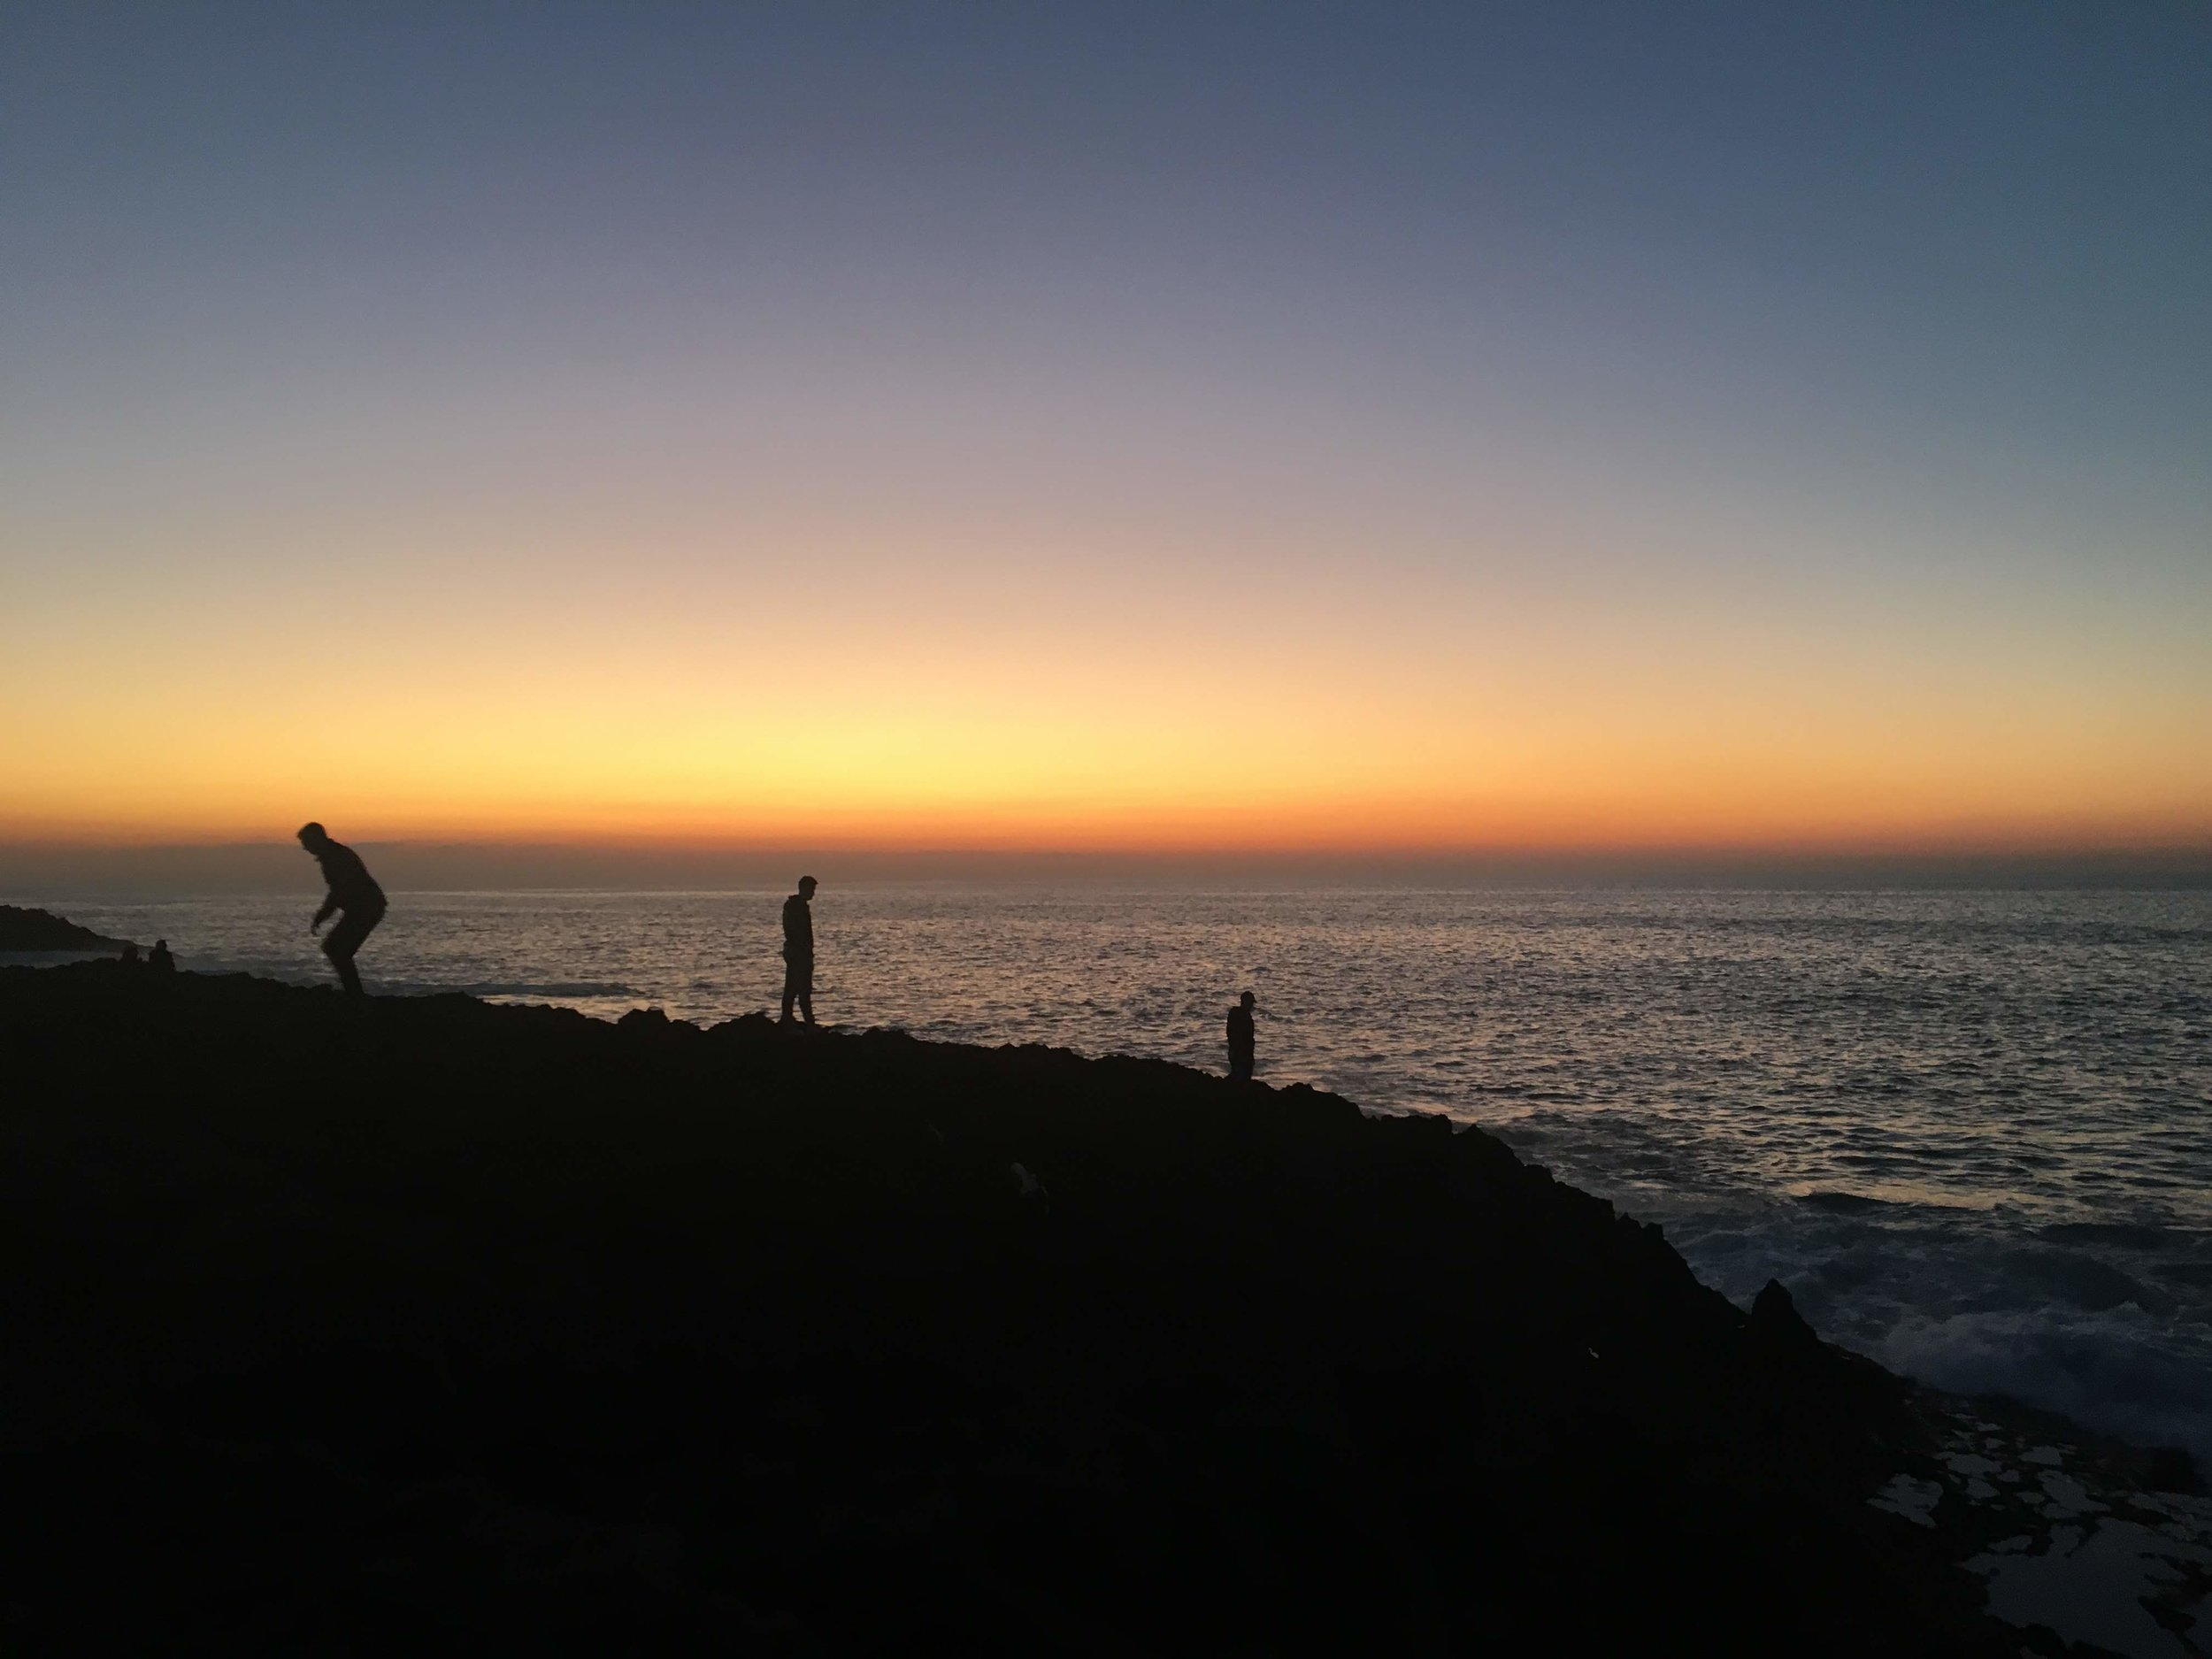 The Rabat sunsets are to die for! It is a beautiful place to sit and stare over the open water. Sitting and reading here while watching the sunsets is one of the most incredible things I've had the opportunity to do in Rabat. Photo credit: Fisher, 2019